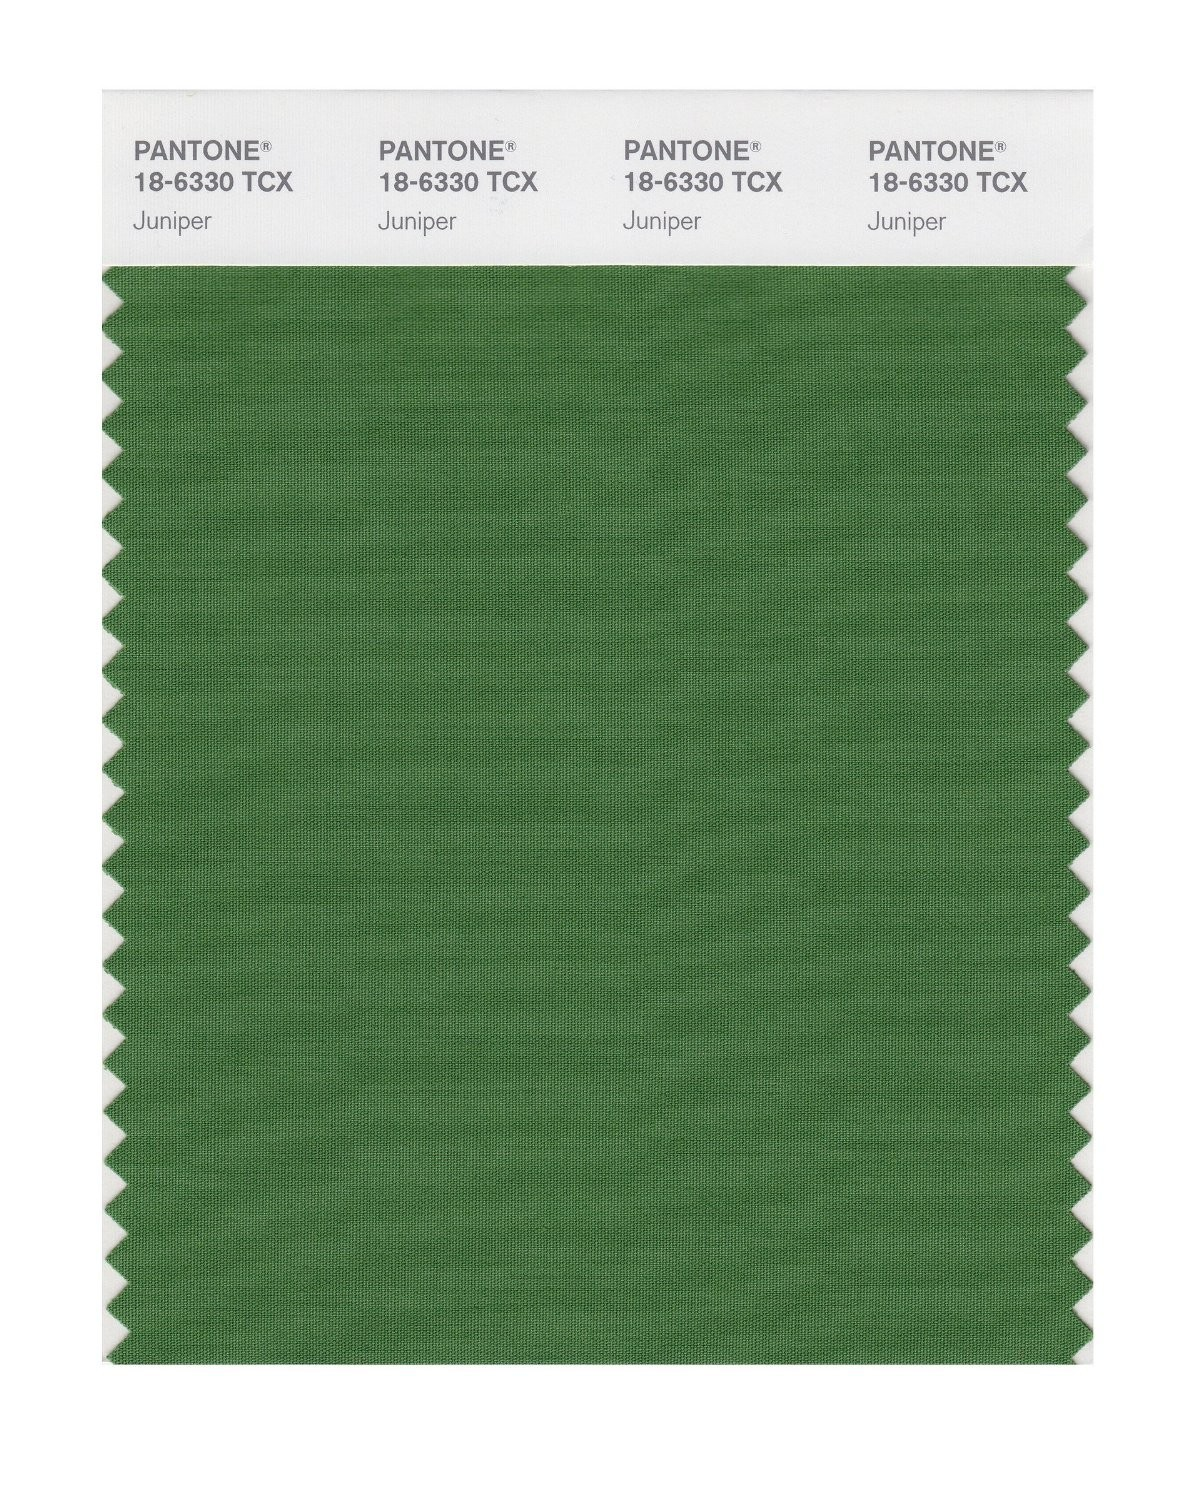 Pantone 18-6330 TCX Swatch Card Juniper